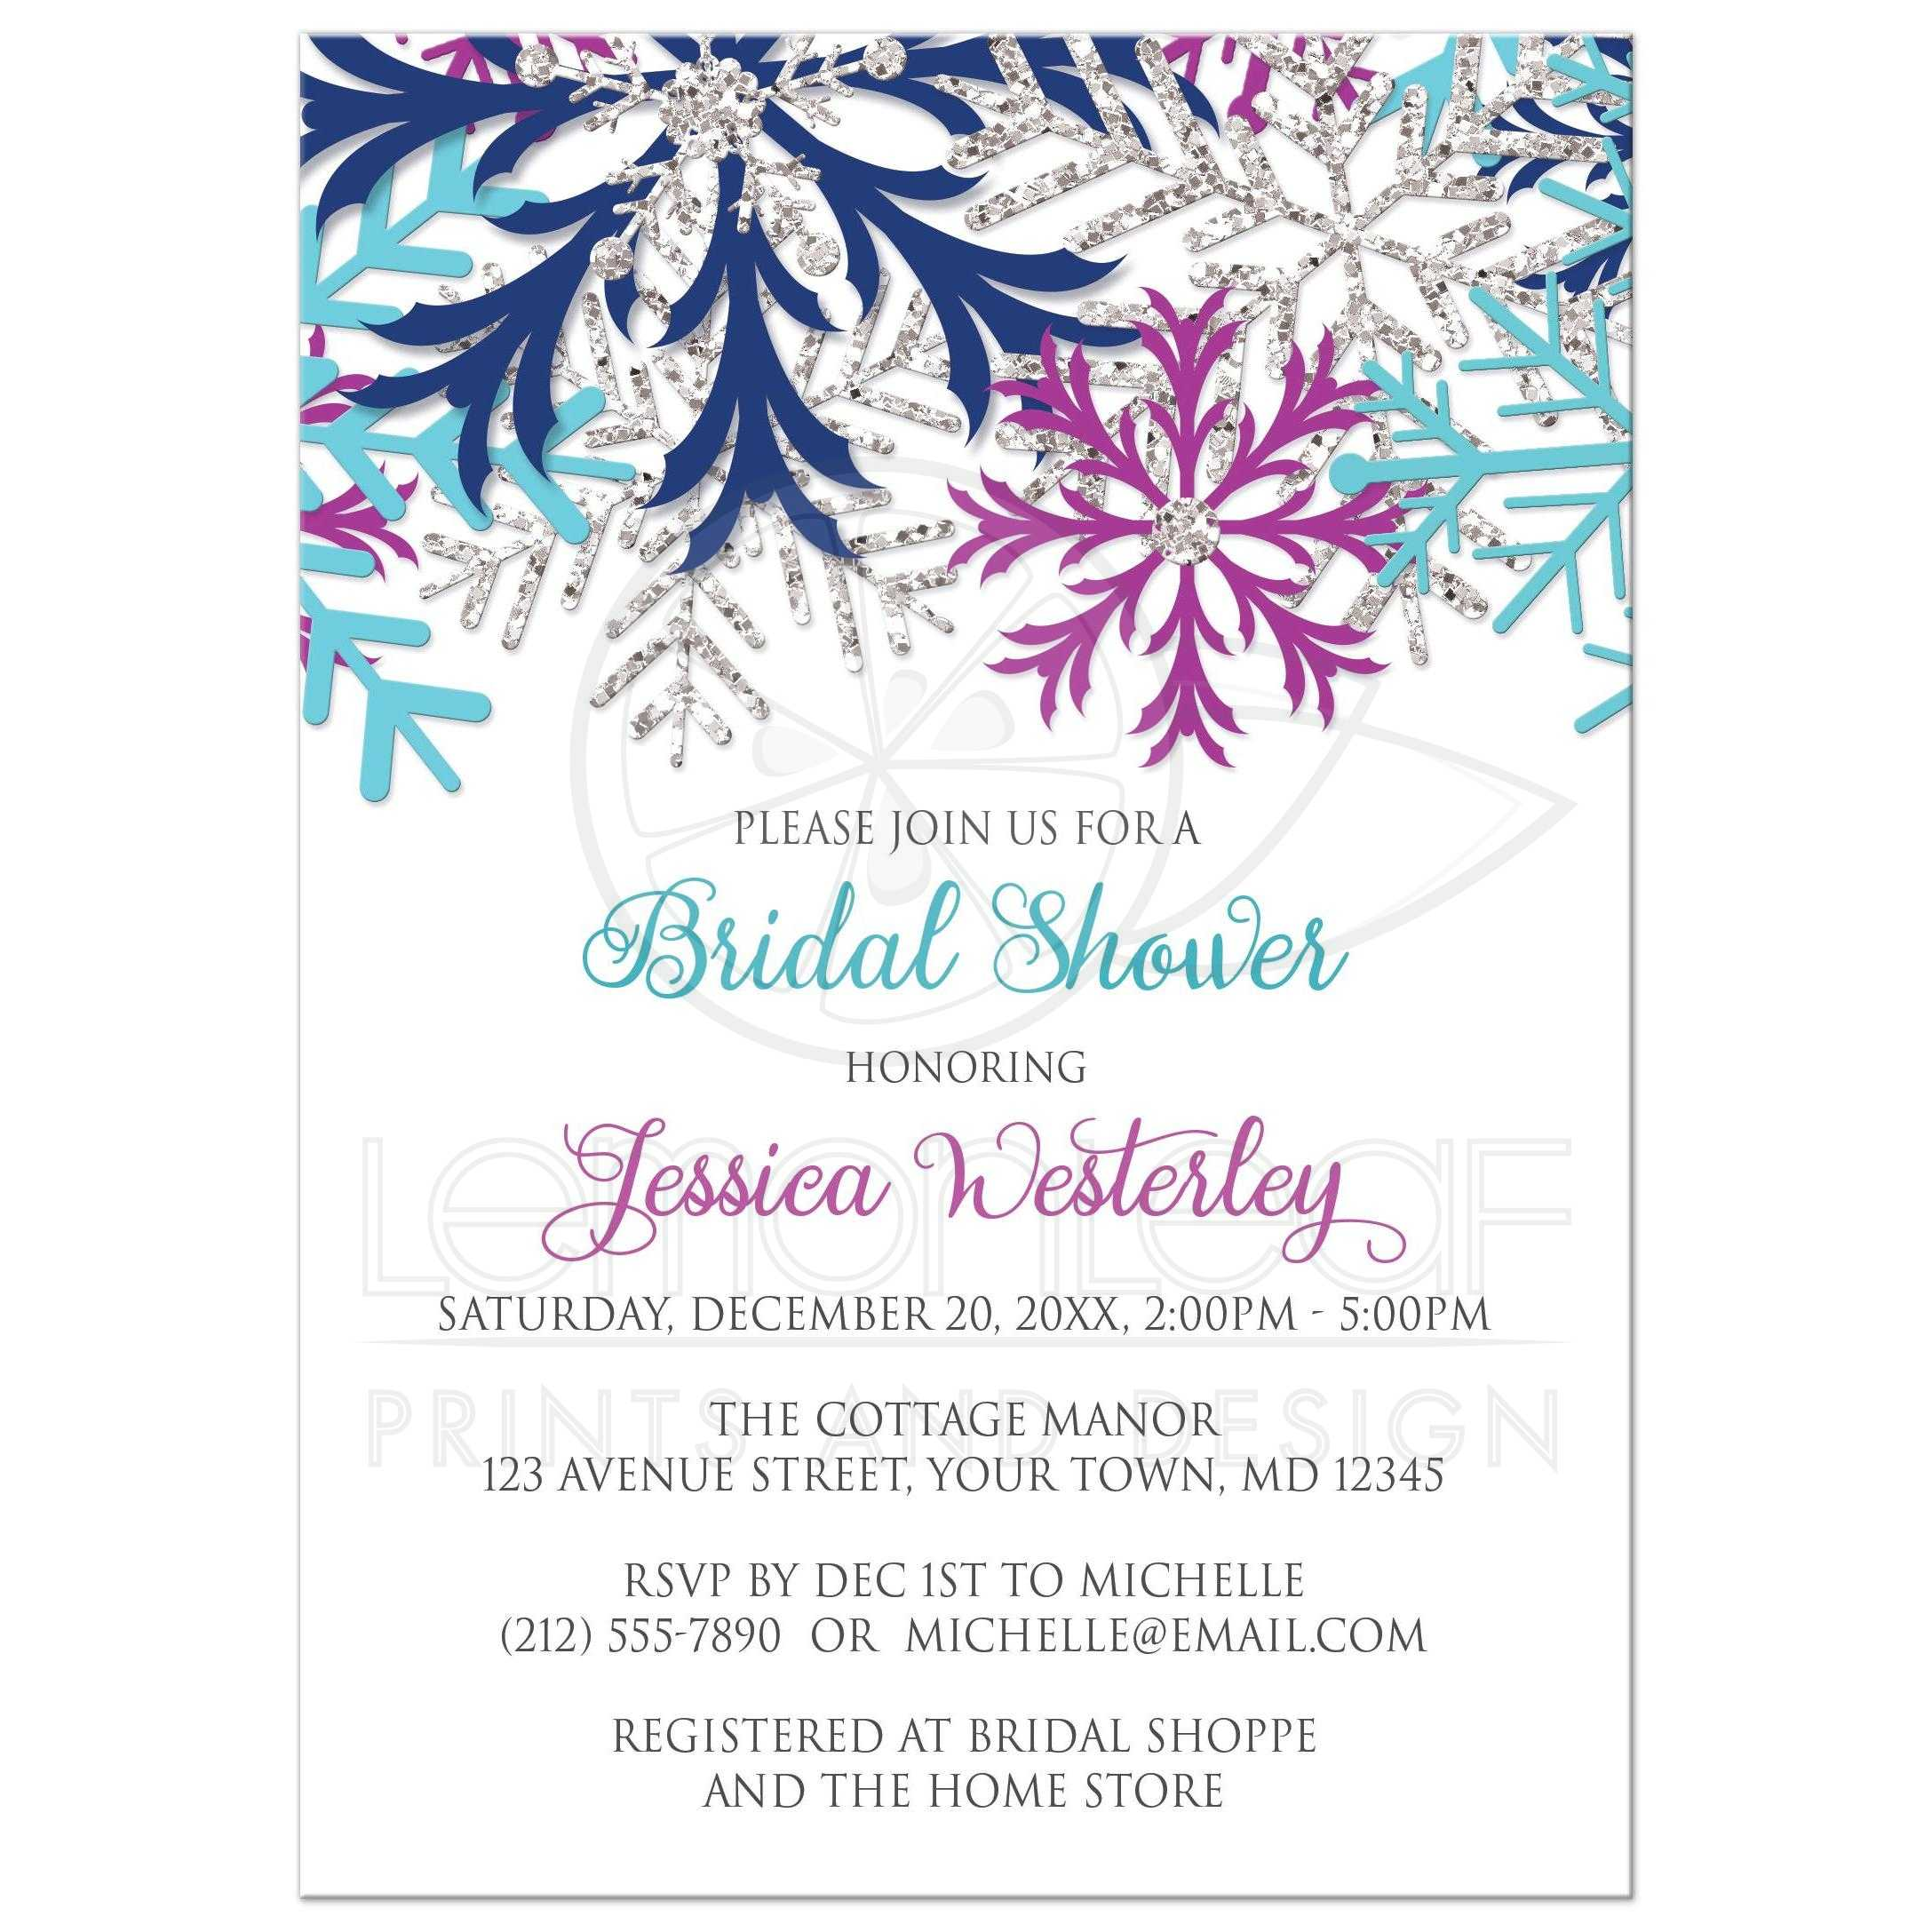 Bridal Shower Invitations - Turquoise Navy Orchid Silver Snowflake